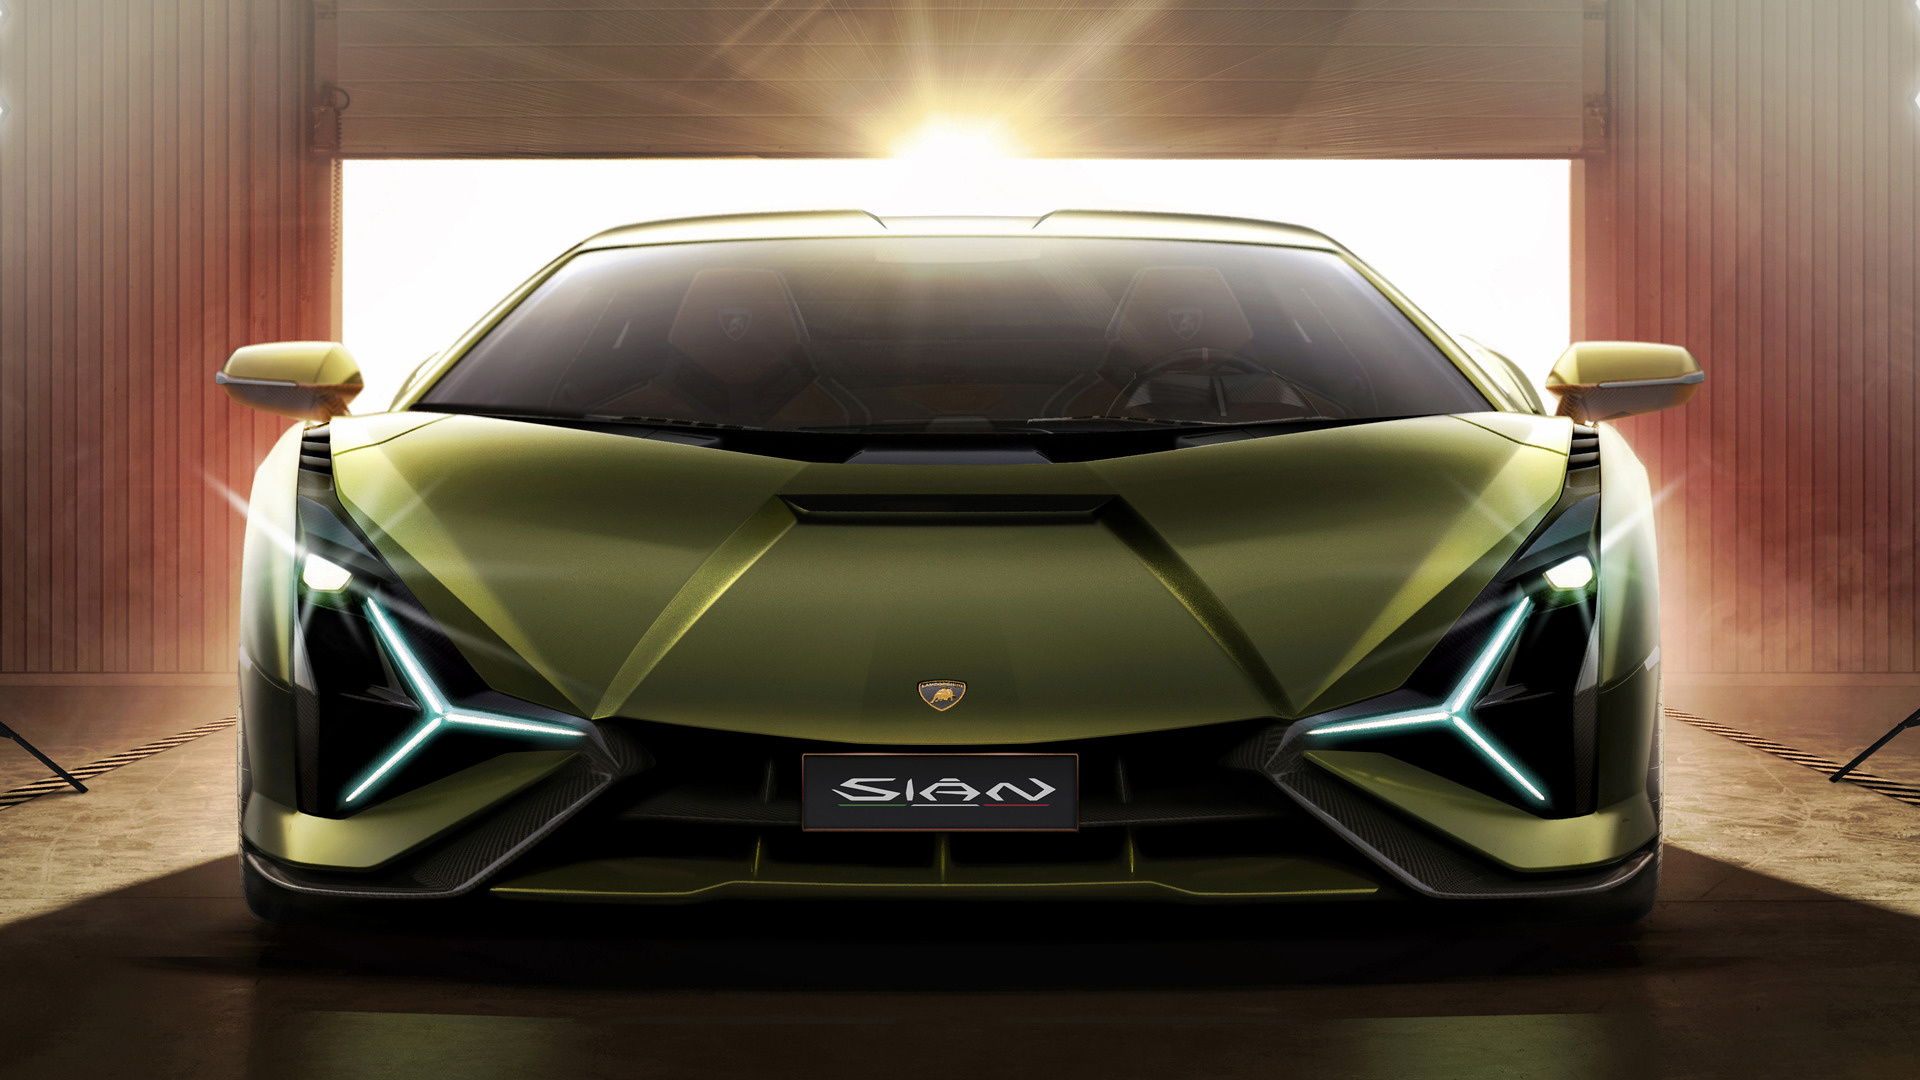 2020 Lamborghini Sian FKP 37 - Wallpapers and HD Images ...